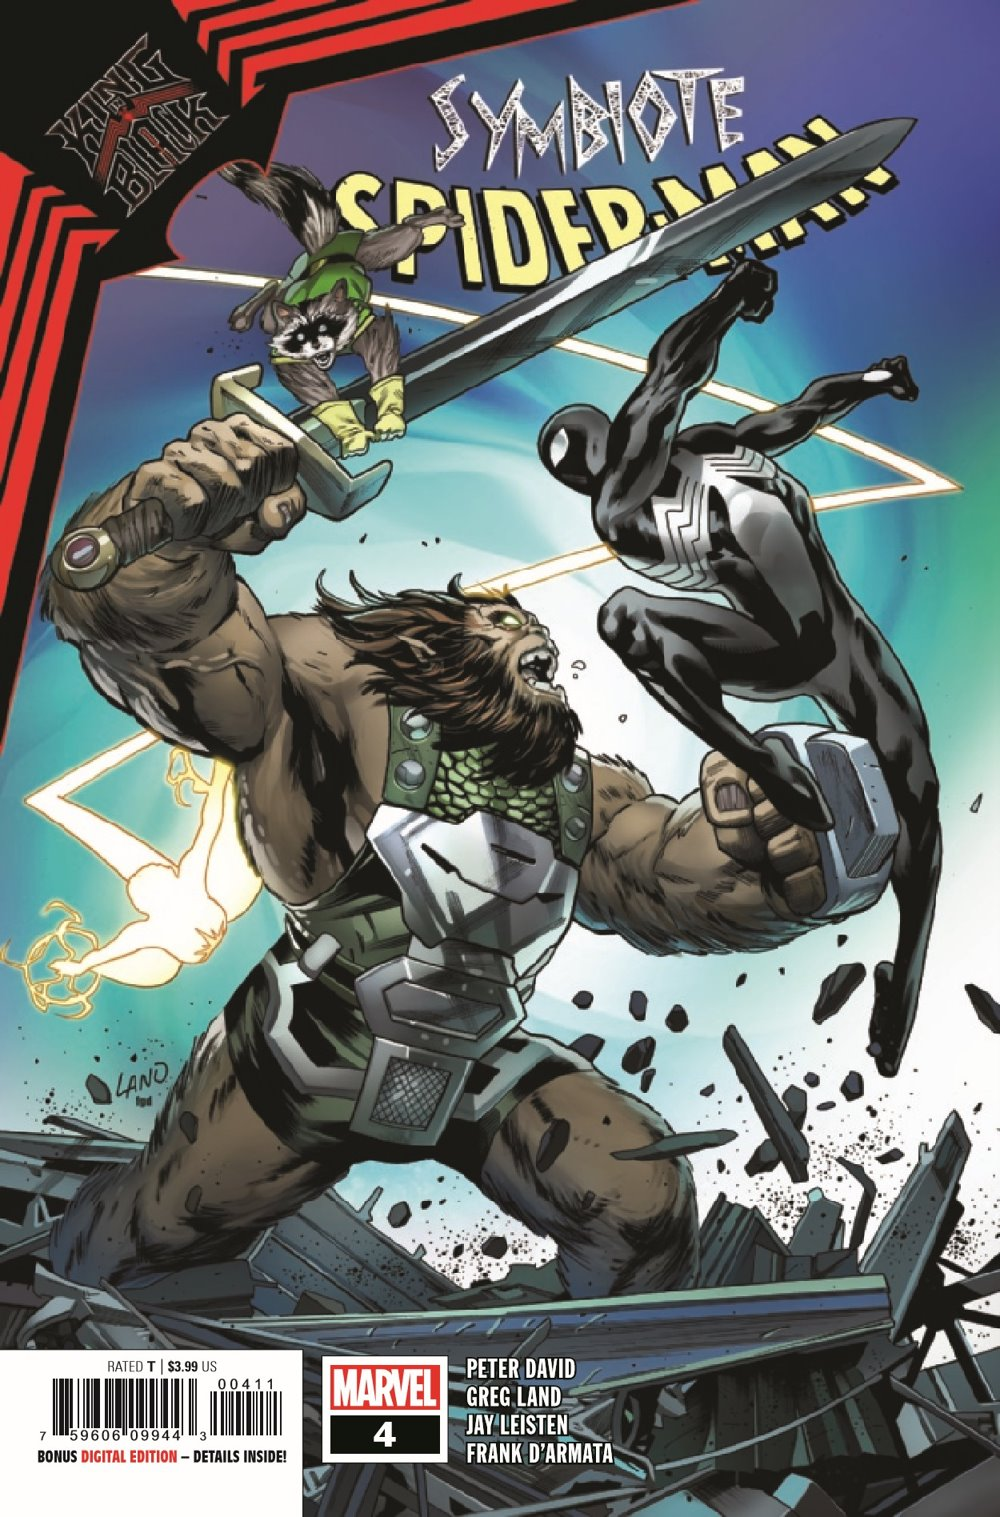 SYMBIOTESMKIB2020004_Preview-1 ComicList Previews: SYMBIOTE SPIDER-MAN KING IN BLACK #4 (OF 5)